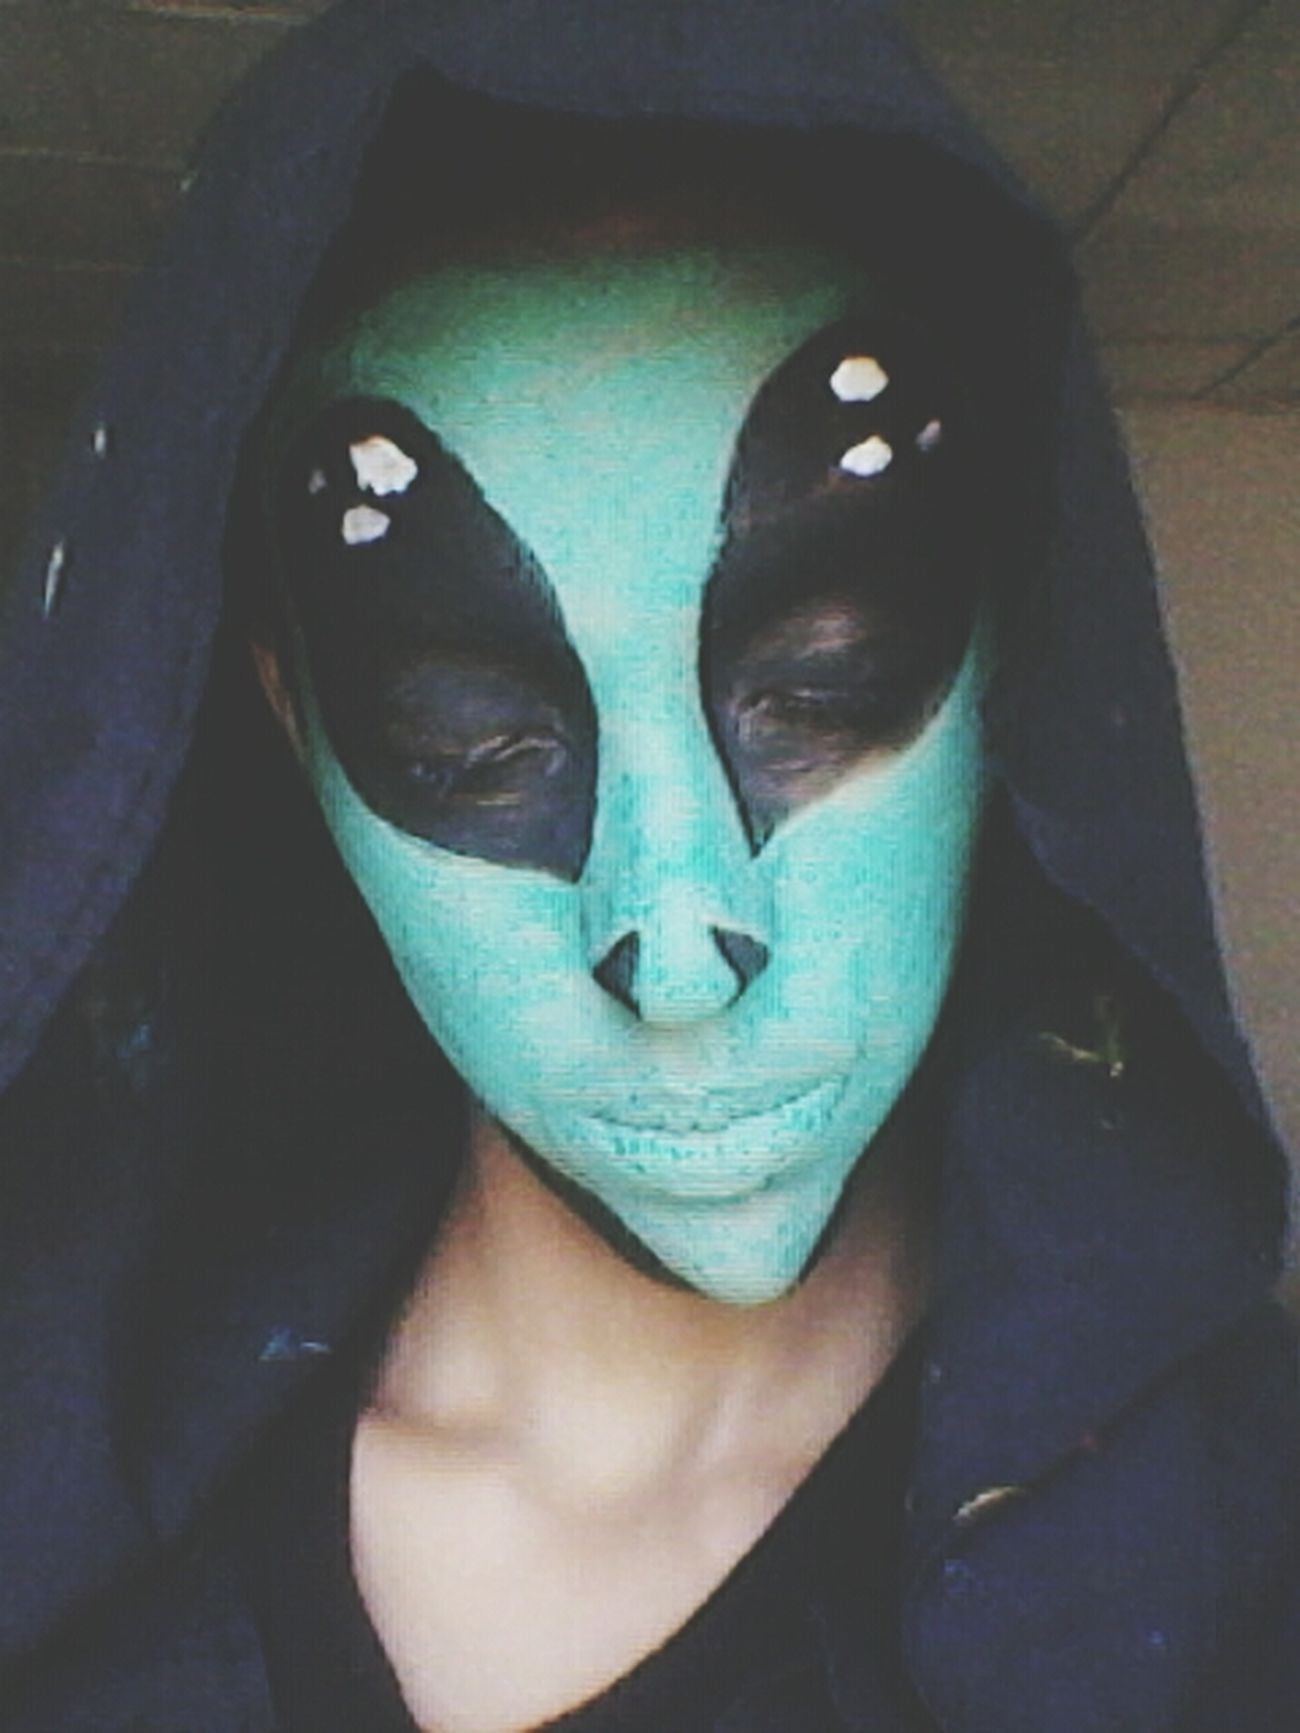 Alien Mutant. Makeup Fantasy Alien Haloween 2015 Taking Photos